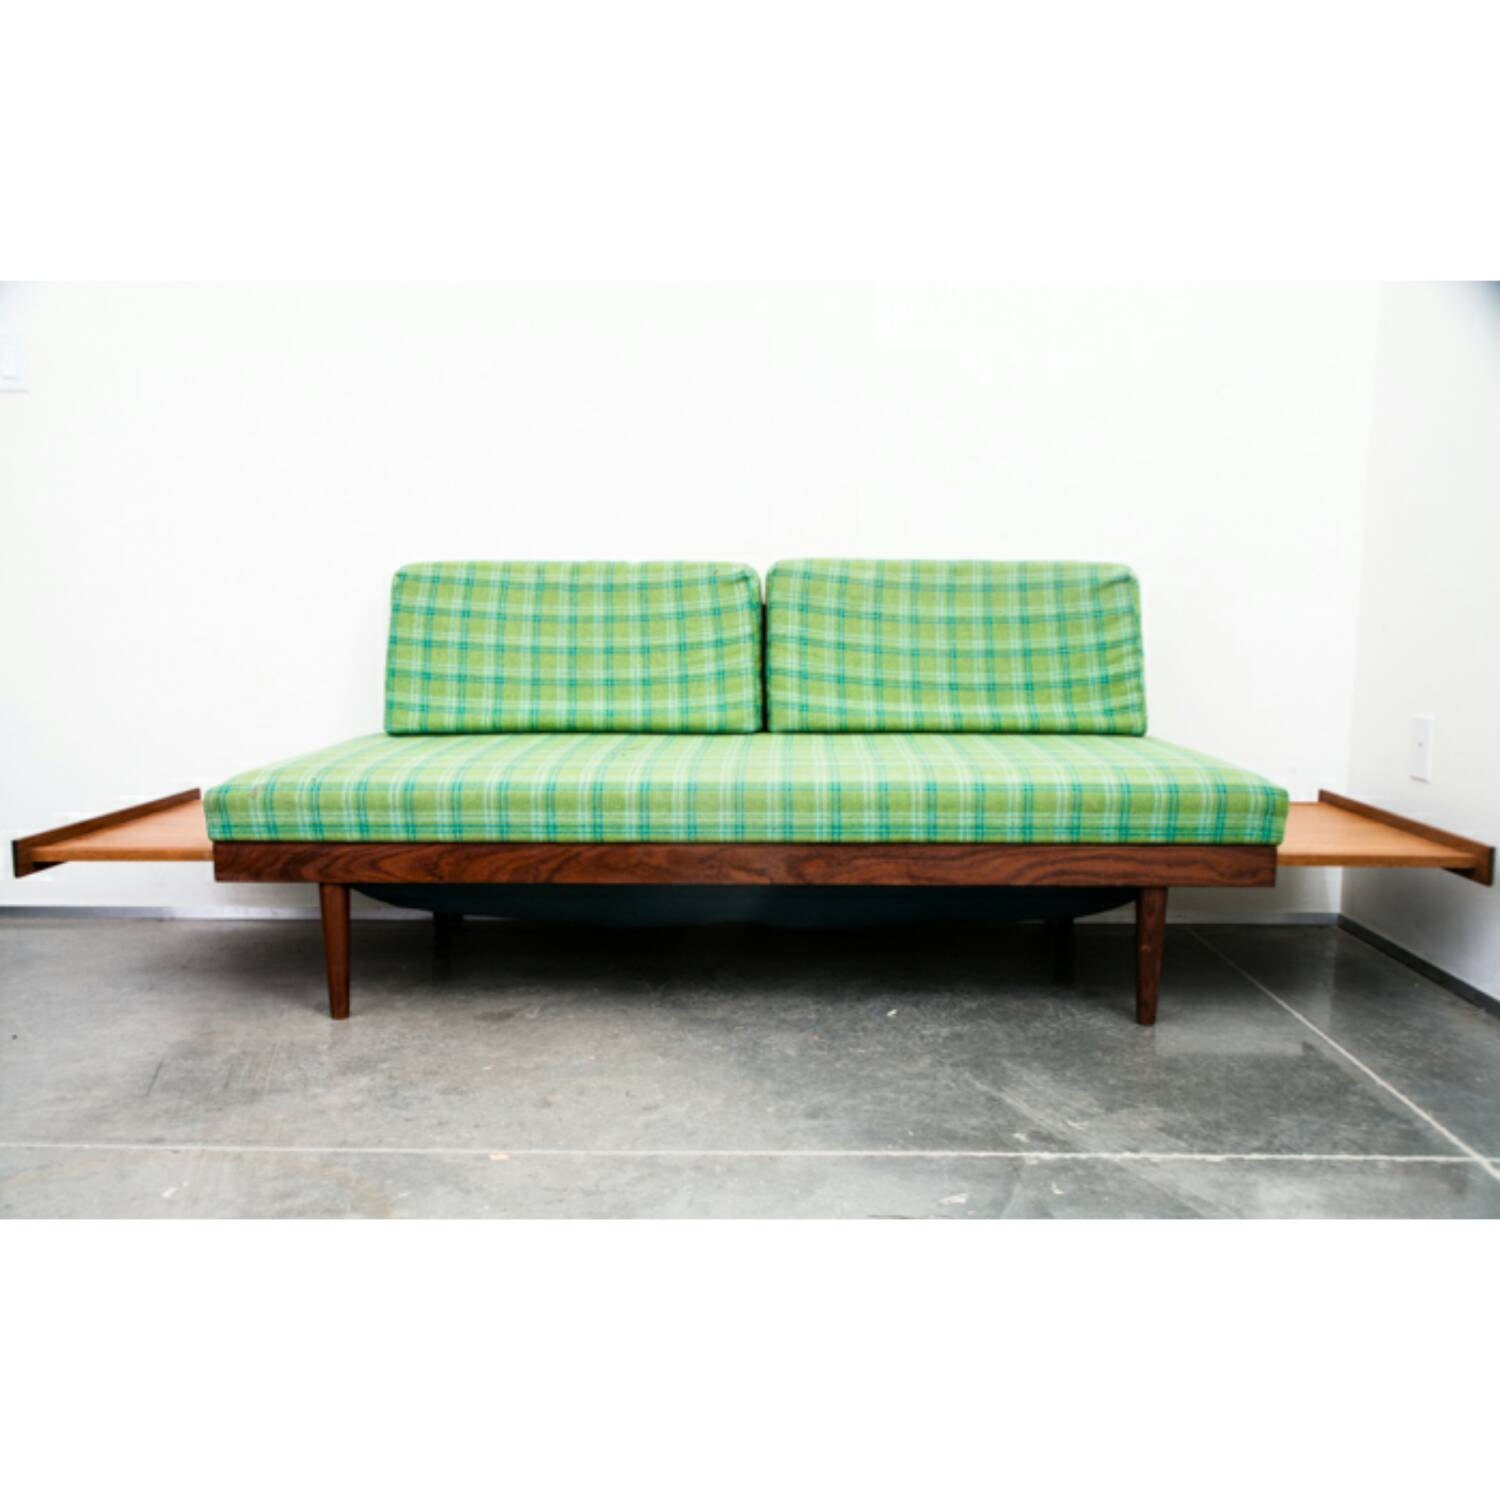 Sold mid century danish modern daybed by midcenturysacramento for Mid century modern day bed